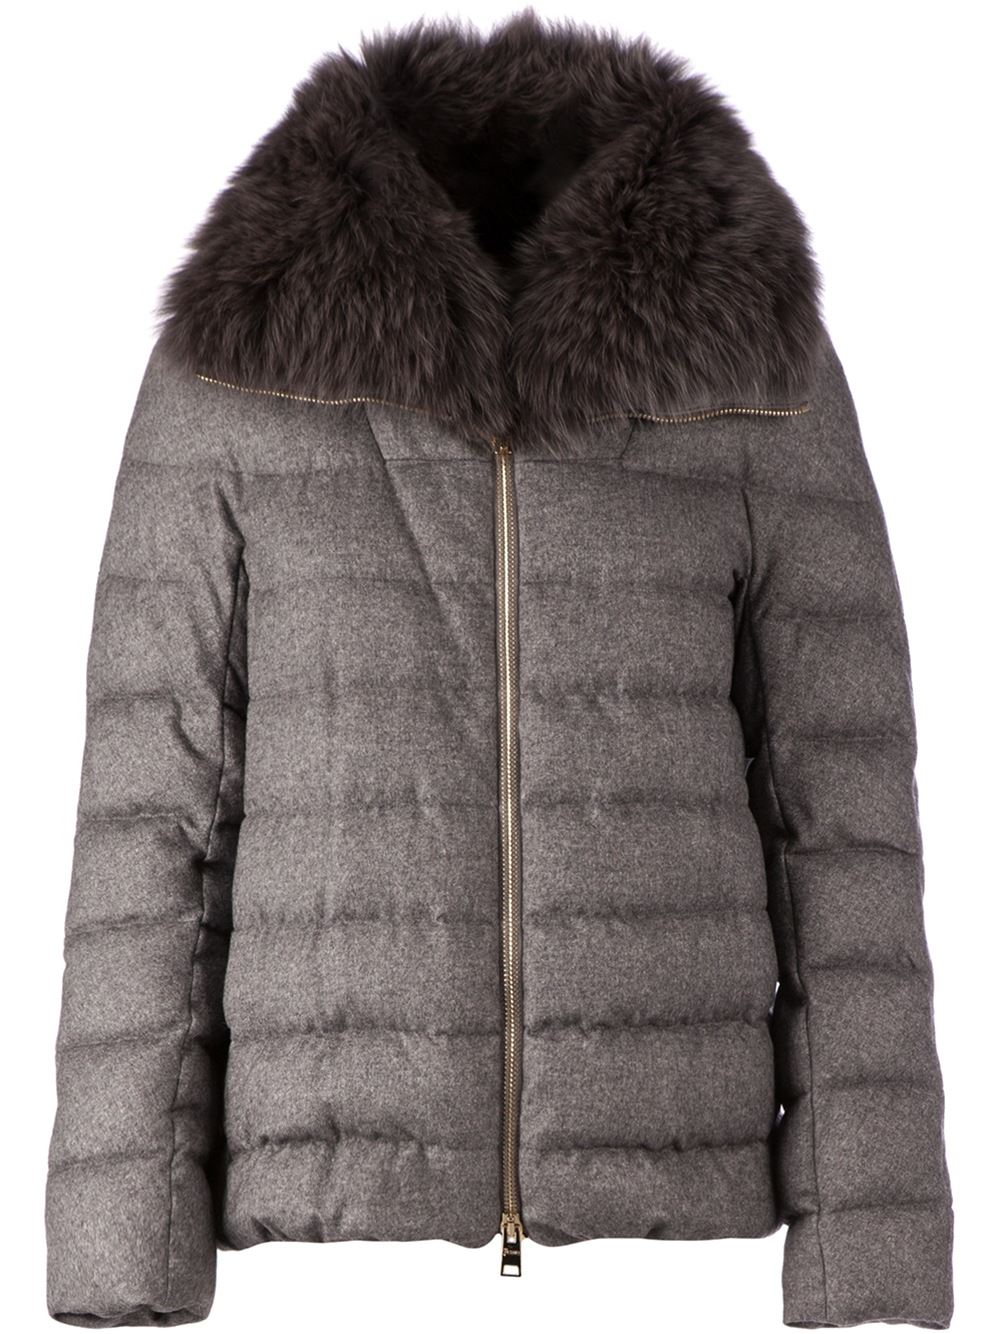 Herno Fox Fur Collar Feather Down Coat in Gray | Lyst